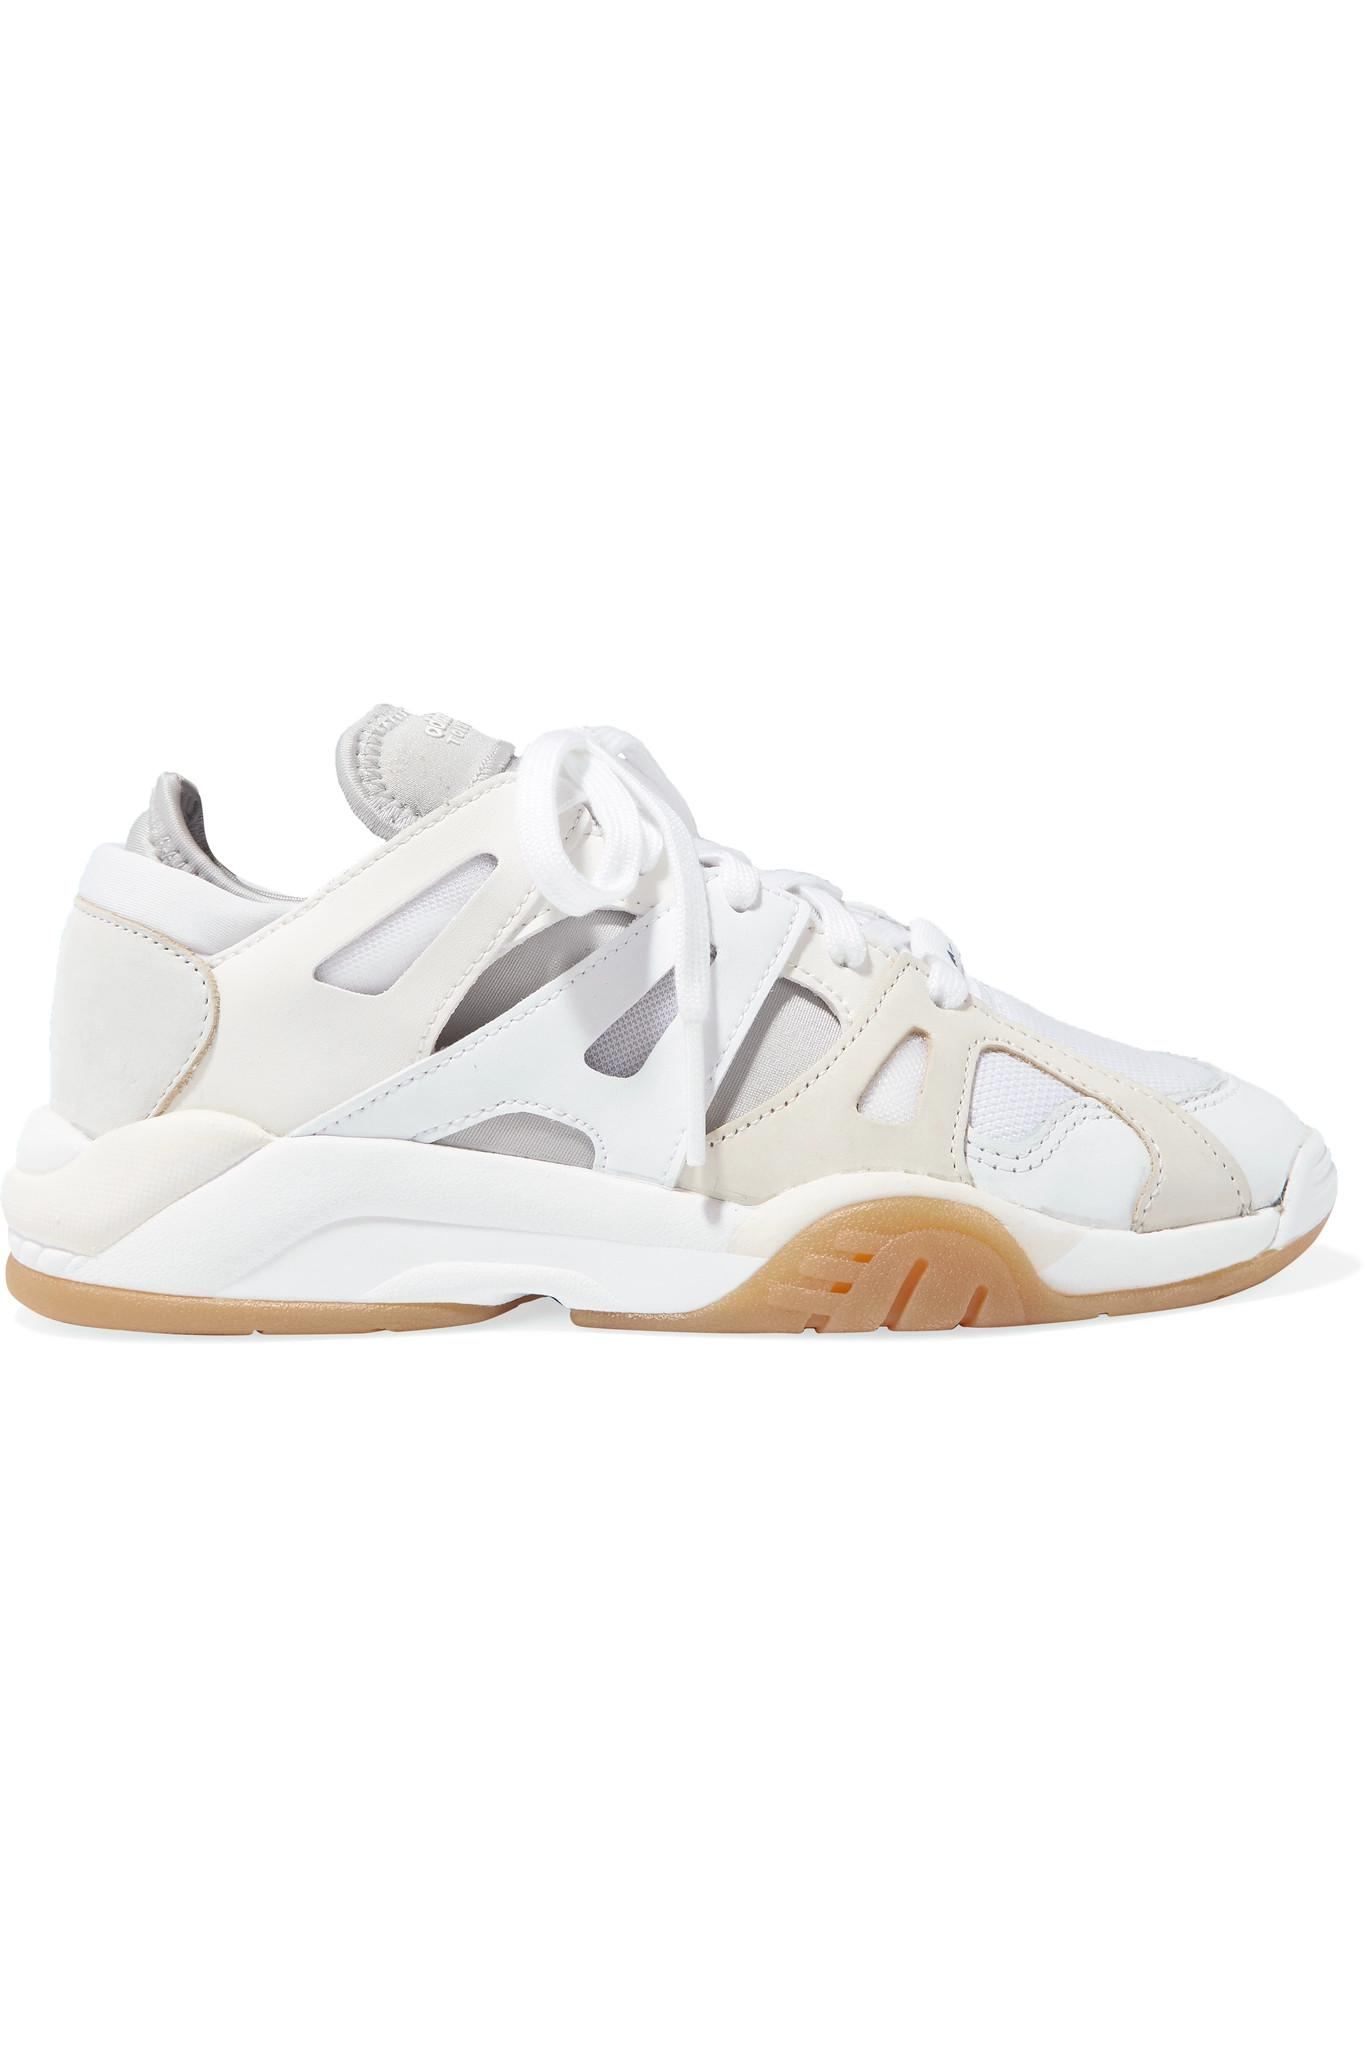 sports shoes d606b 9375a adidas Originals. Womens White Dimension Low Leather ...